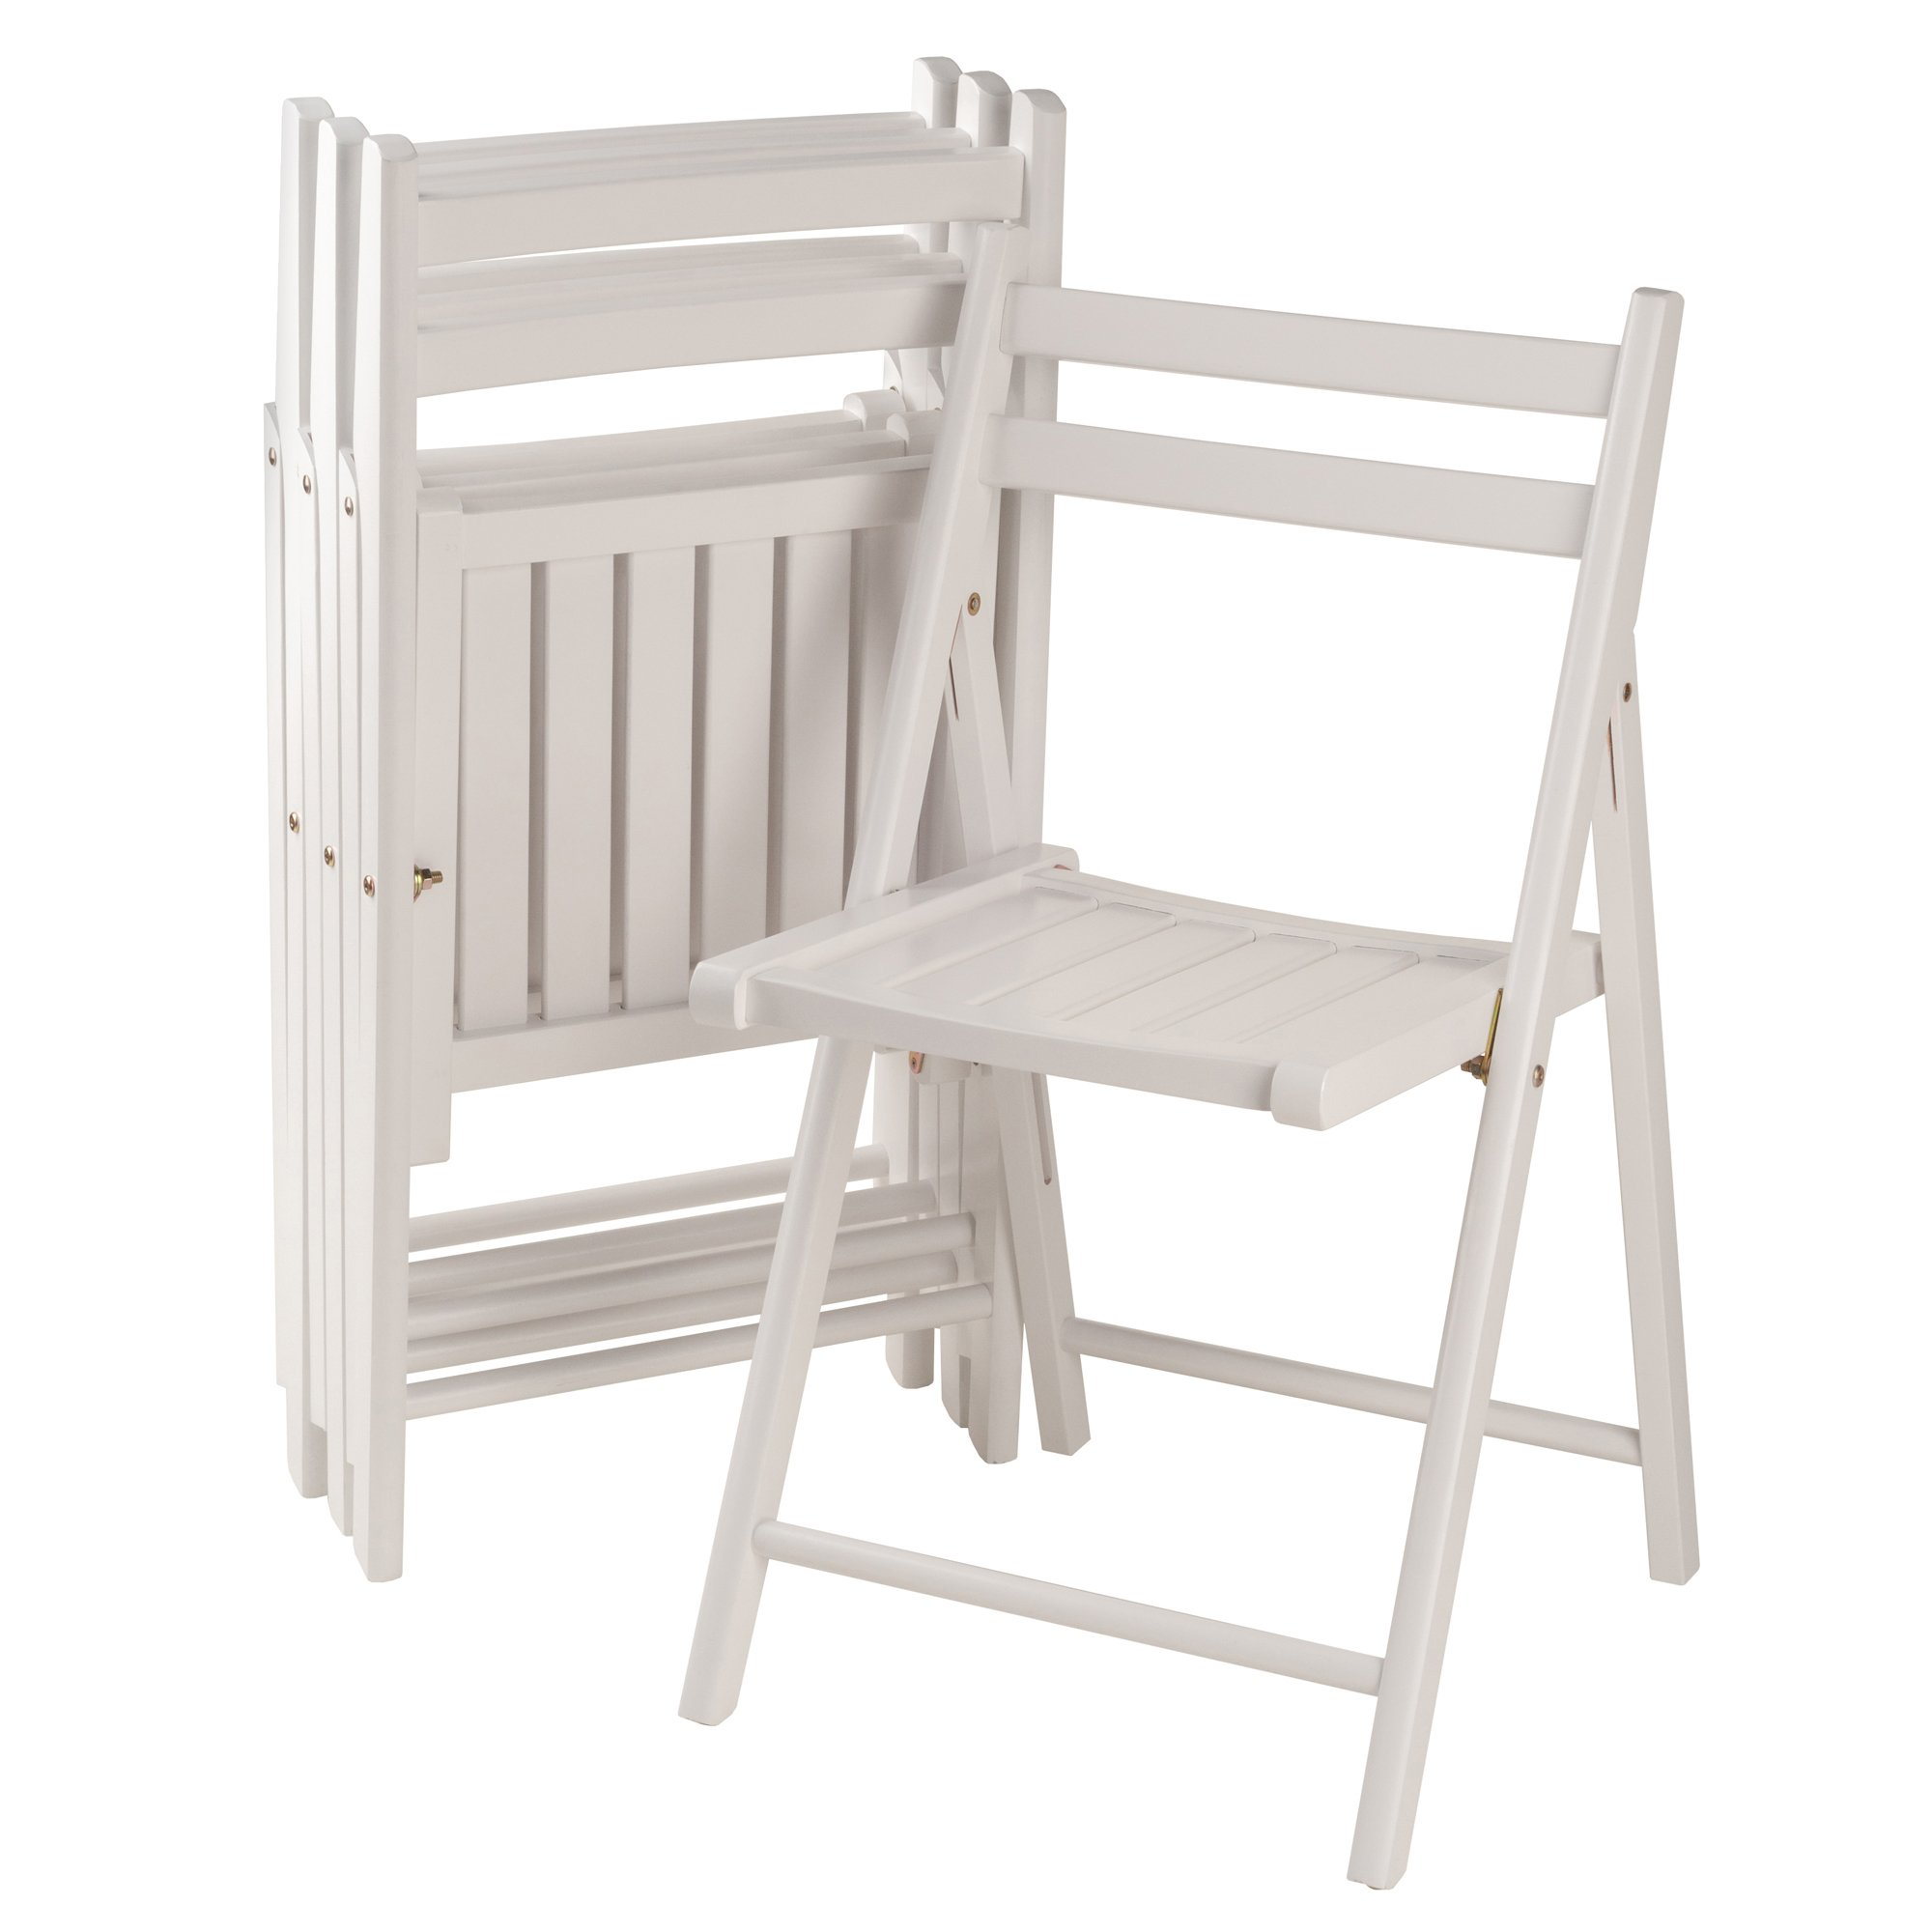 Winsome Wood 10415 Robin 4-PC Folding Set White Chair by Winsome Wood (Image #1)